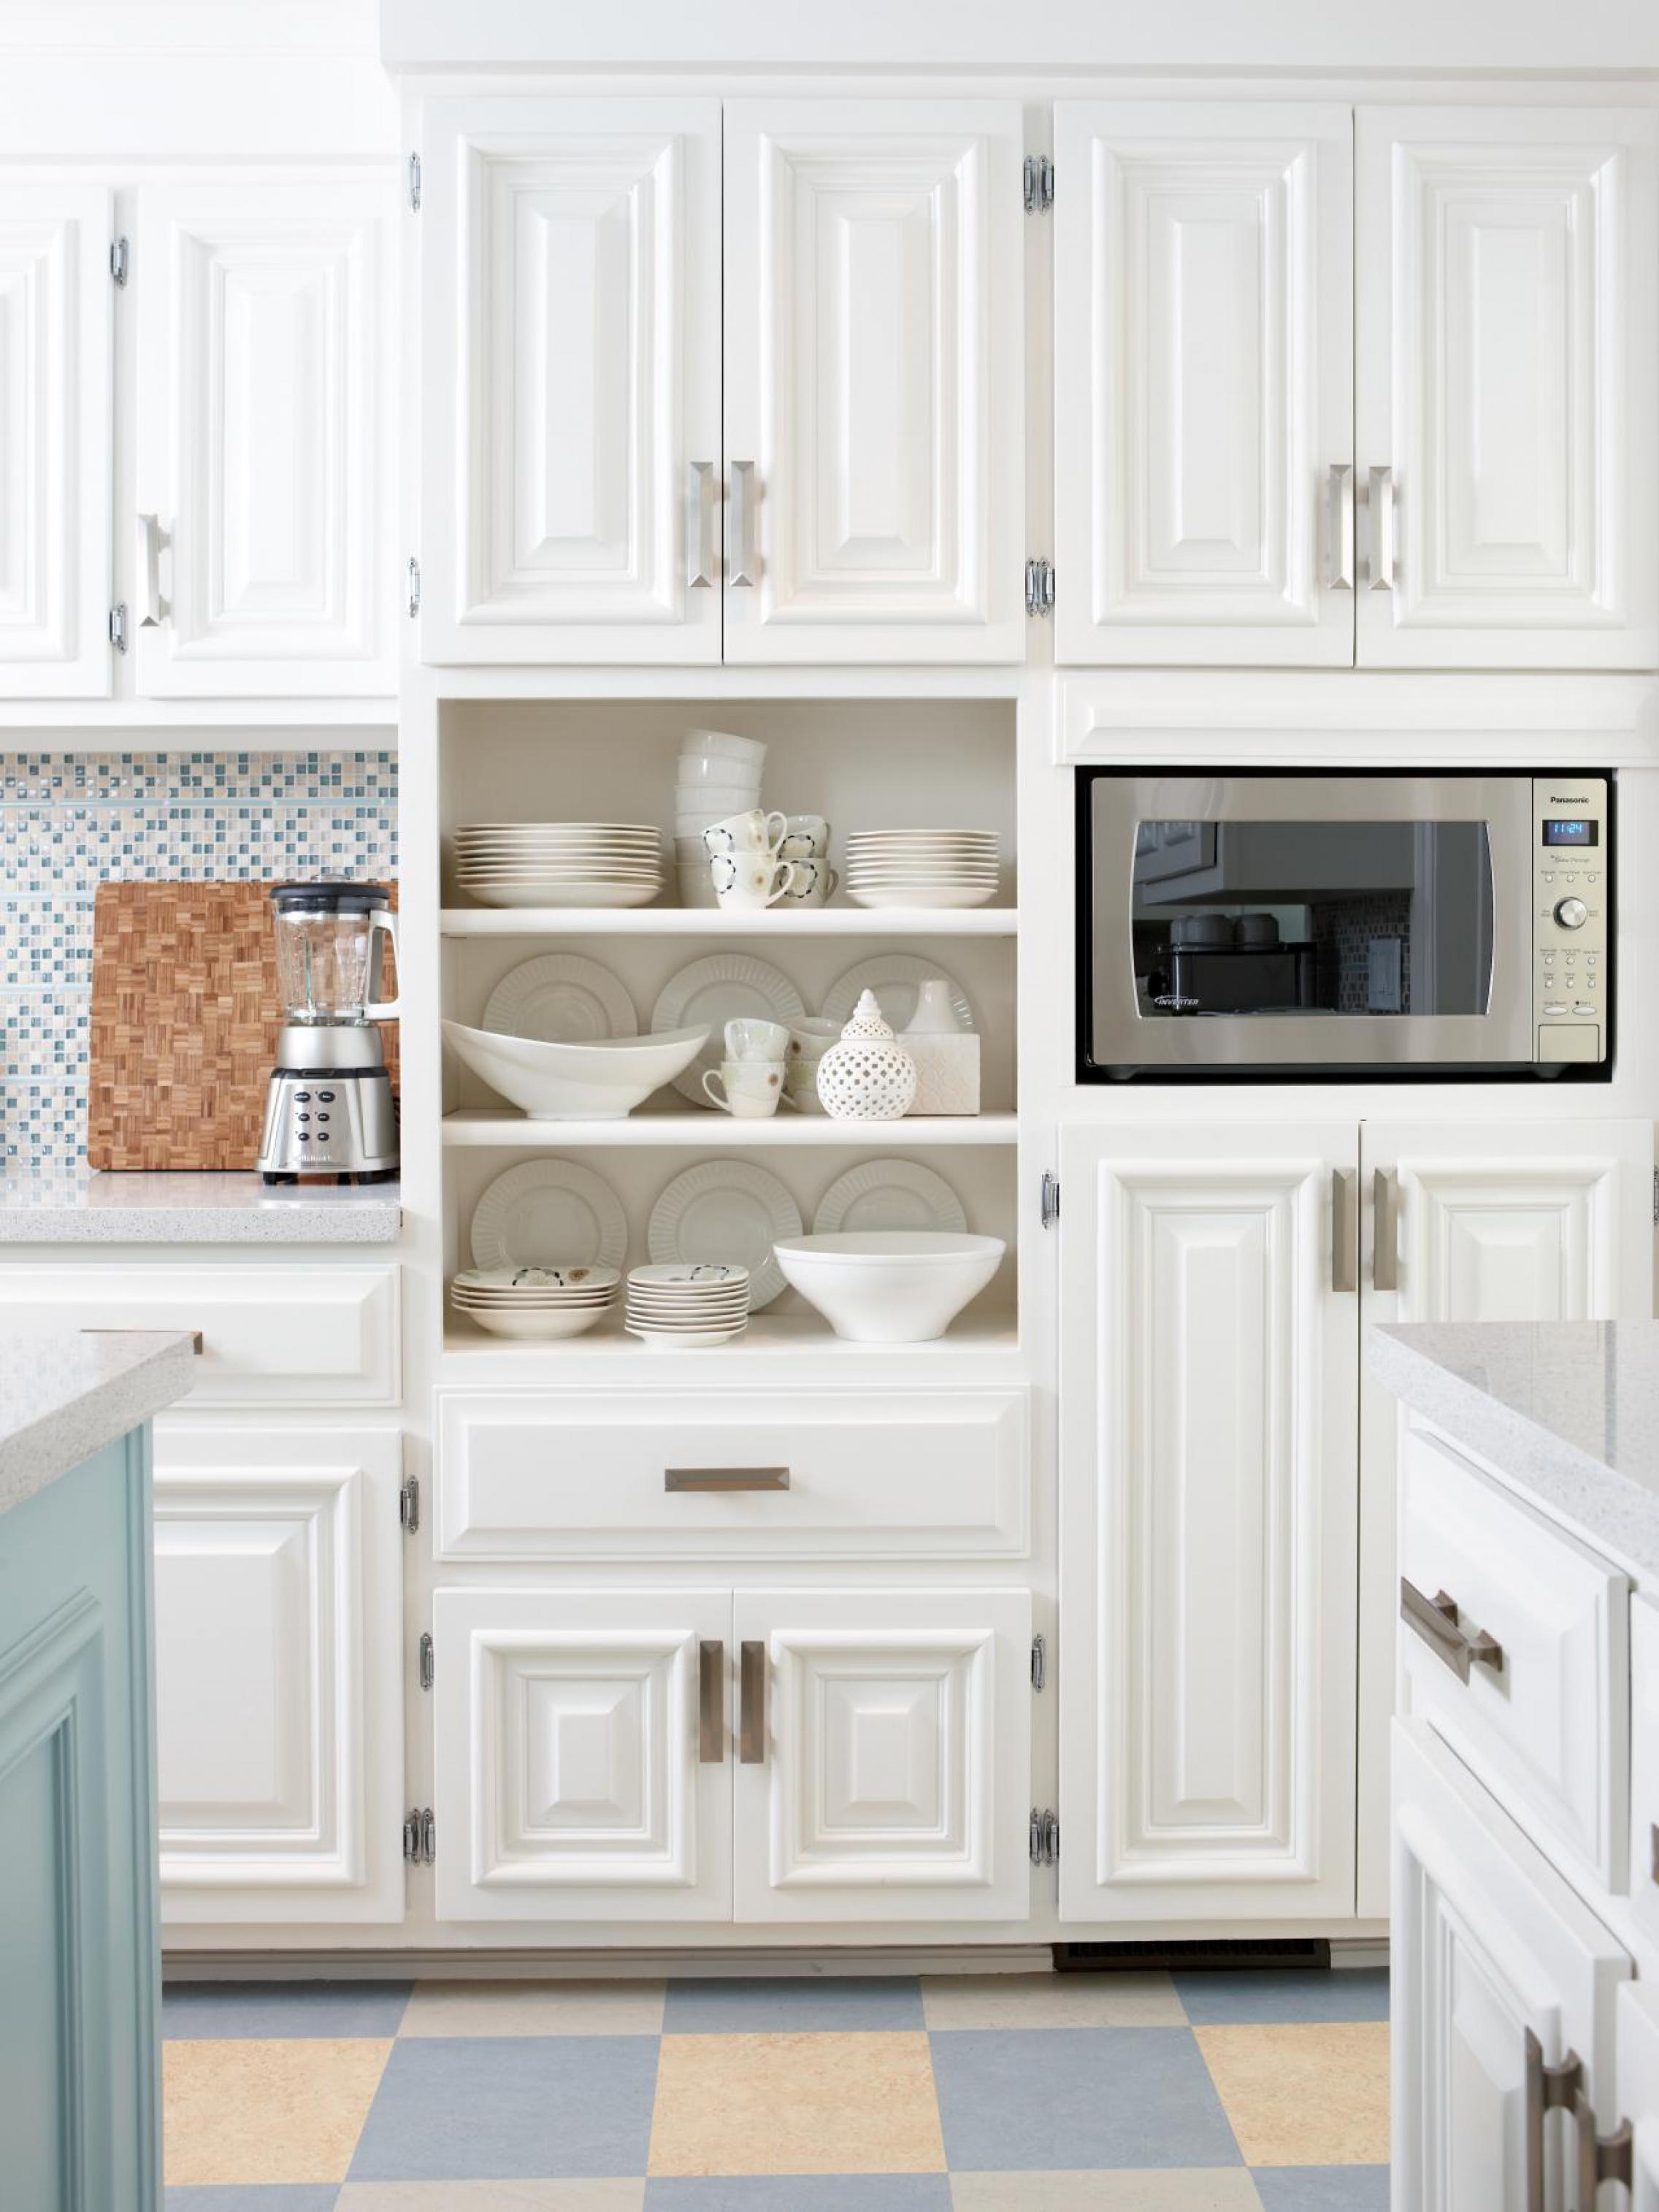 Ikea Kitchen Design Blog Smart Open Storage With A Custom Ikea Pantry